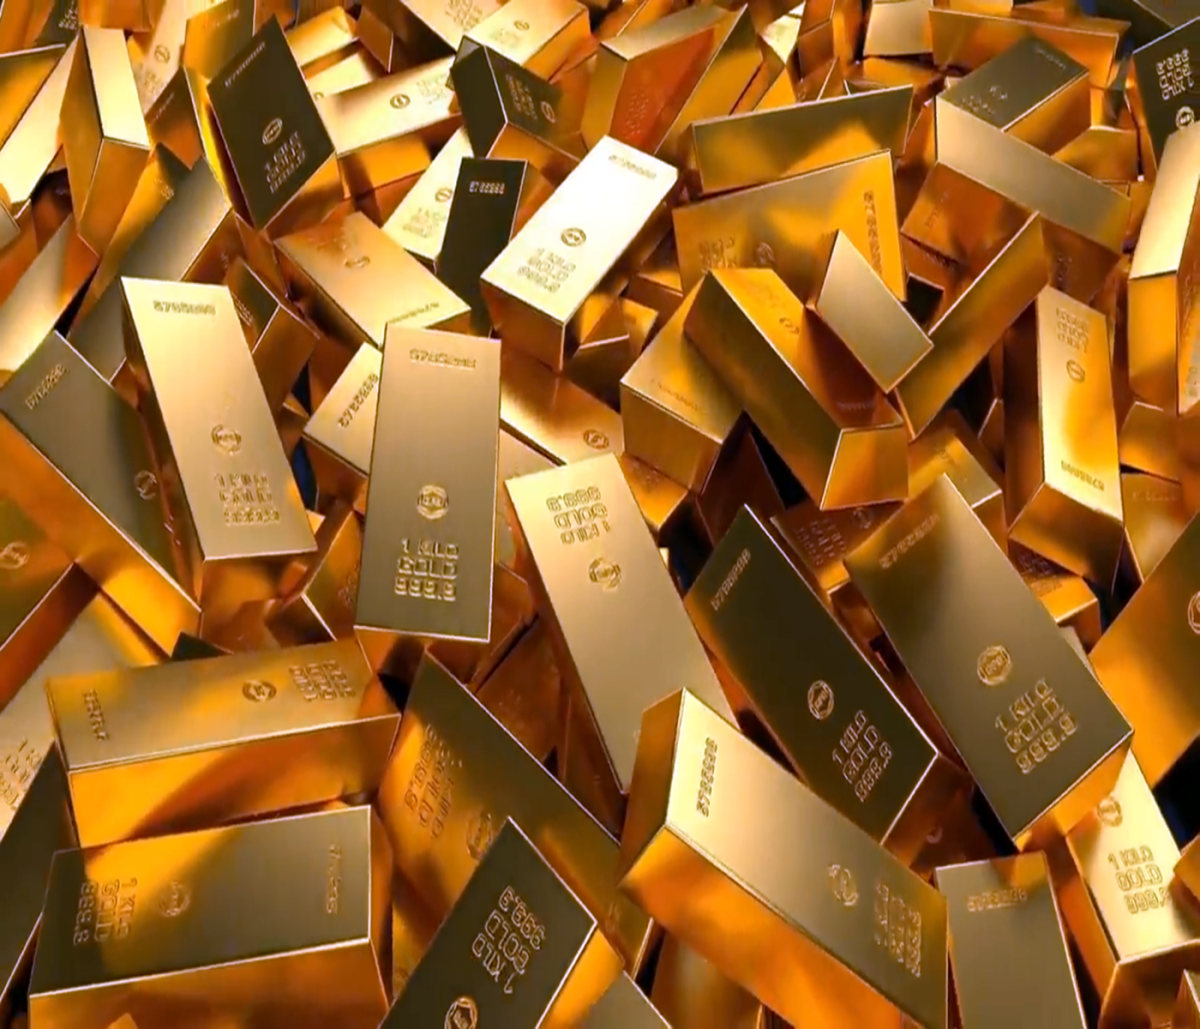 A quantity of refined Shiny gold bars.